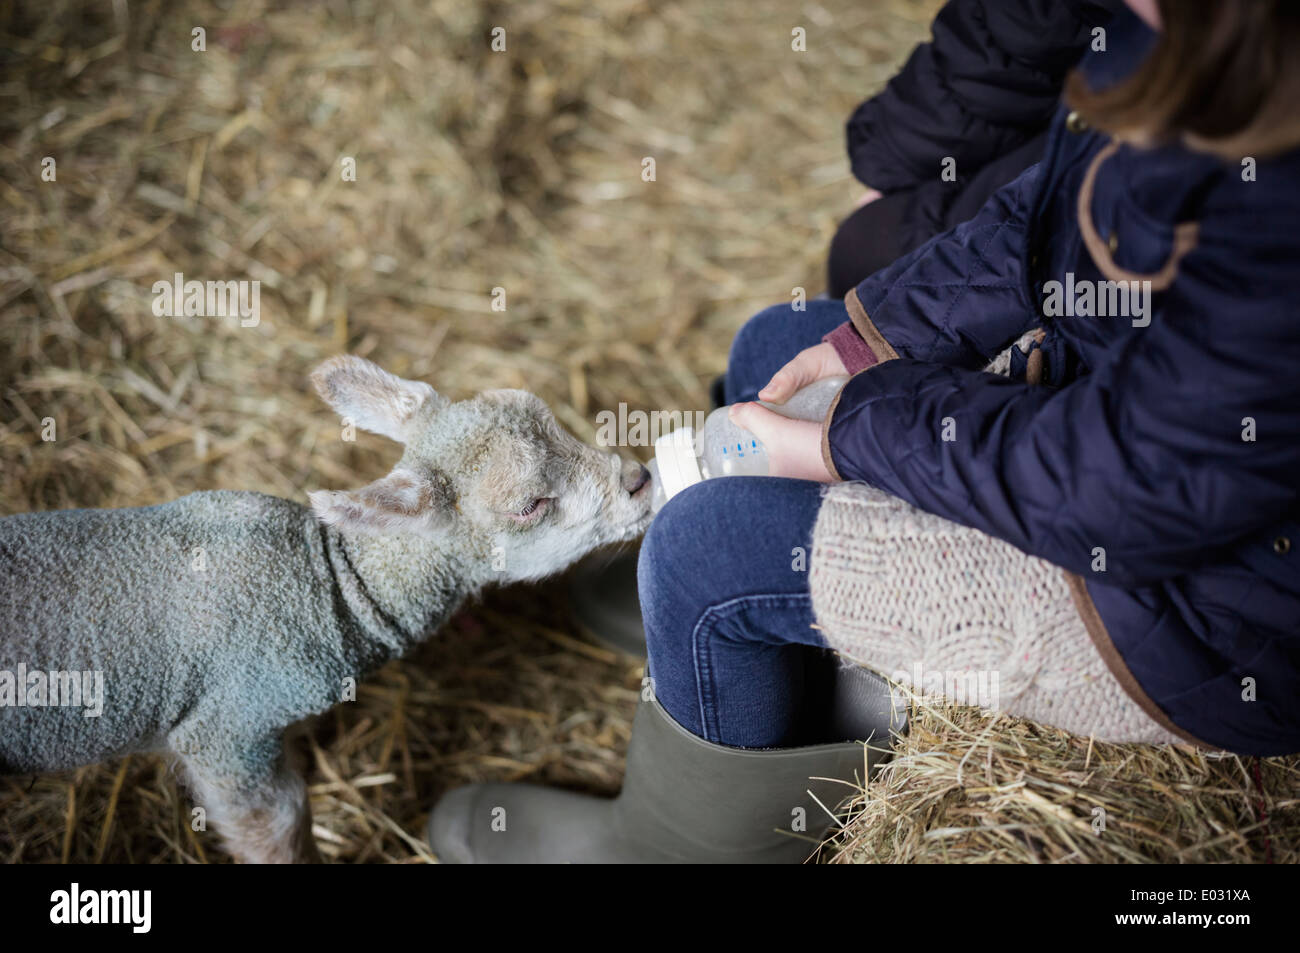 A girl bottle feeding a small hungry lamb. - Stock Image